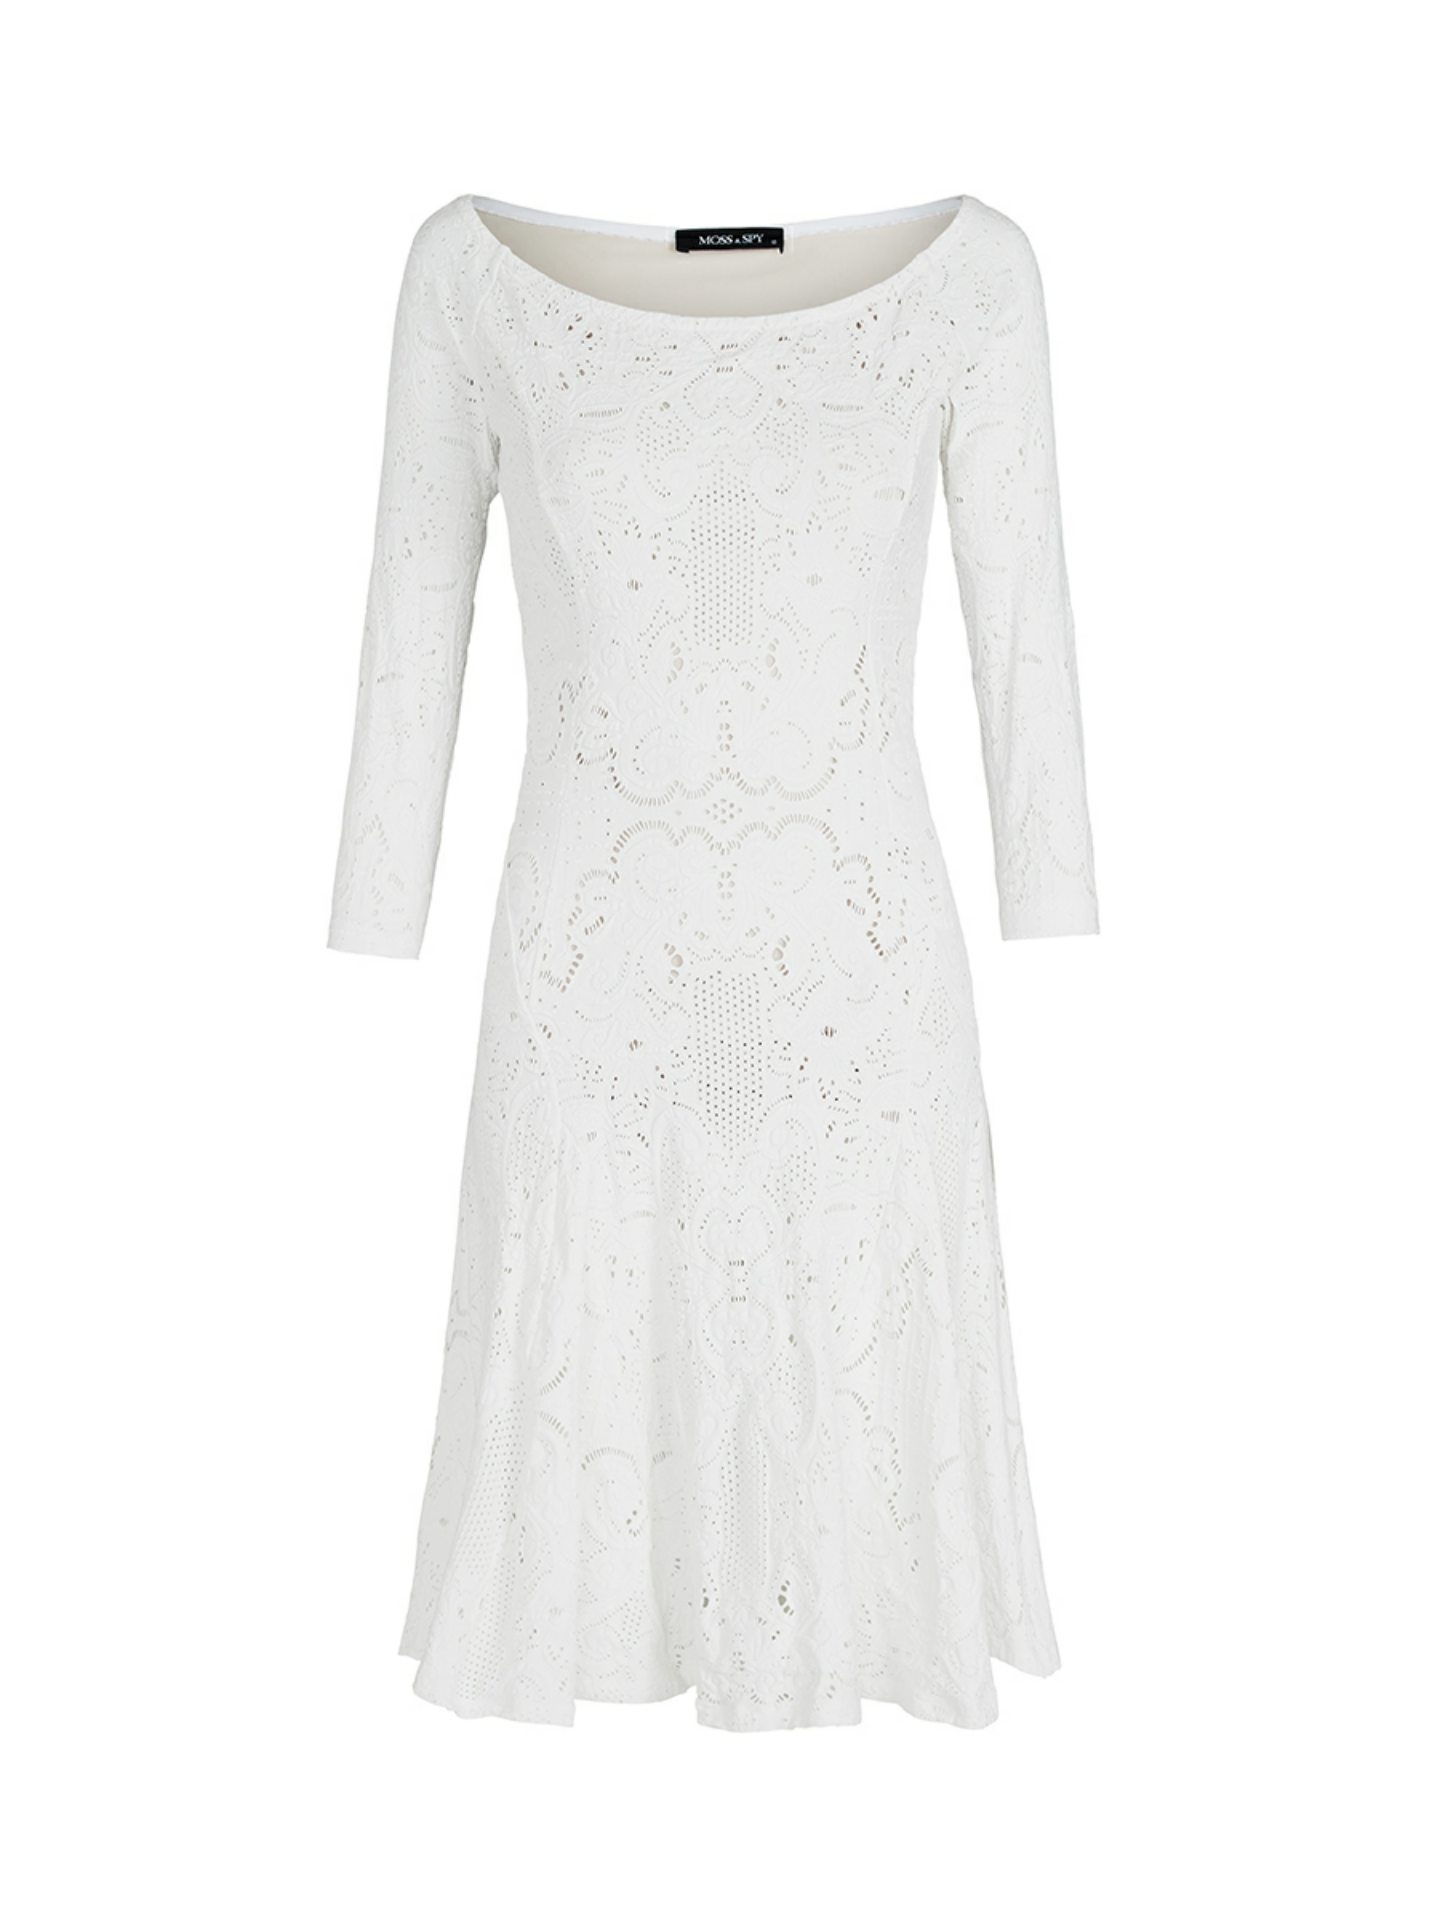 e7ef1b316ec6a White Lace Dress | Moss & Spy Spring Summer Collection at ...